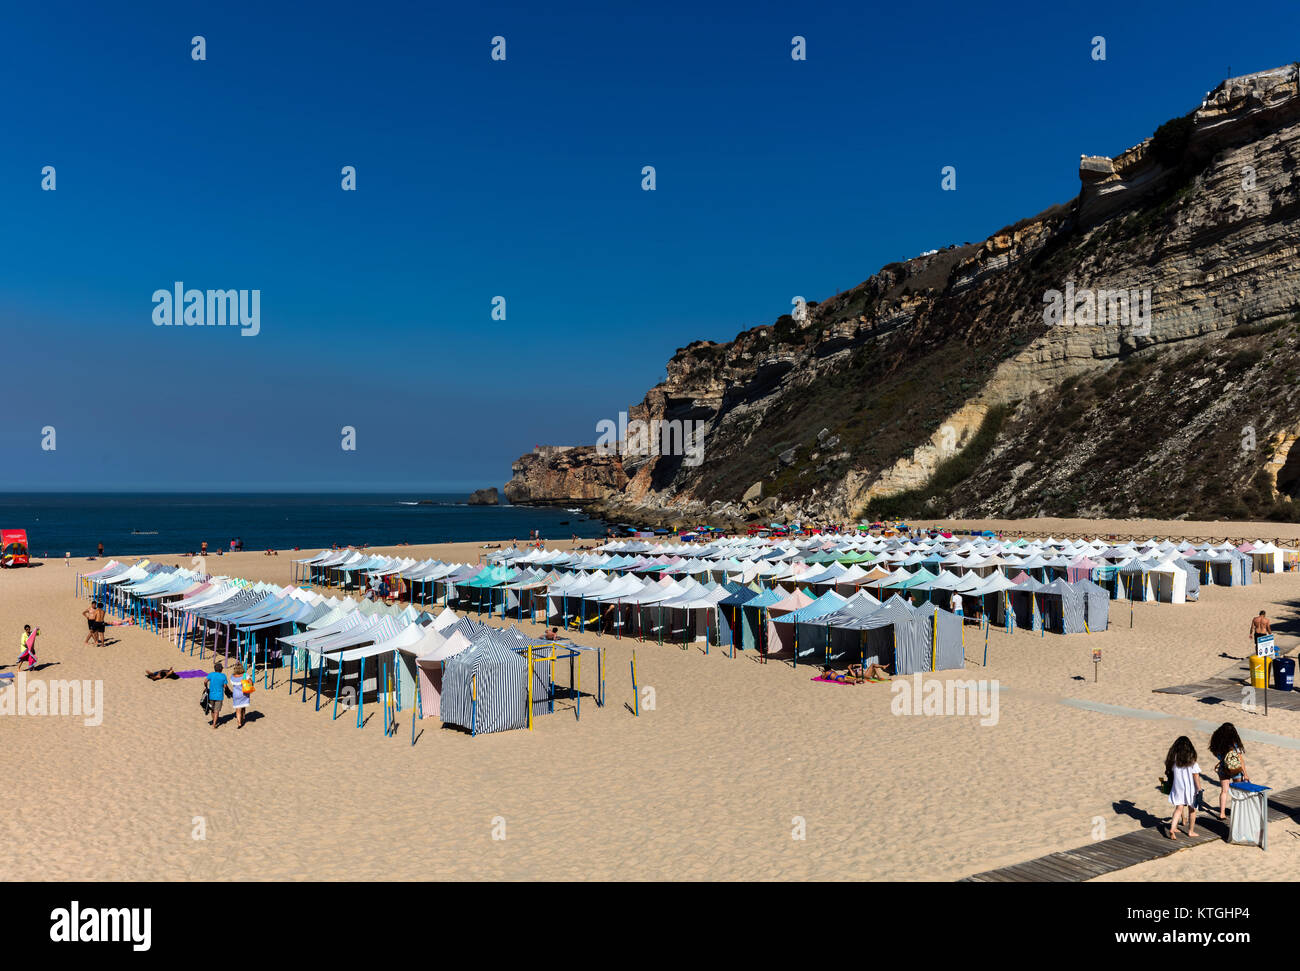 Nazare, Portugal, August 12, 2017: Praia da Nazare beach, covered with the summertime beach tents. - Stock Image